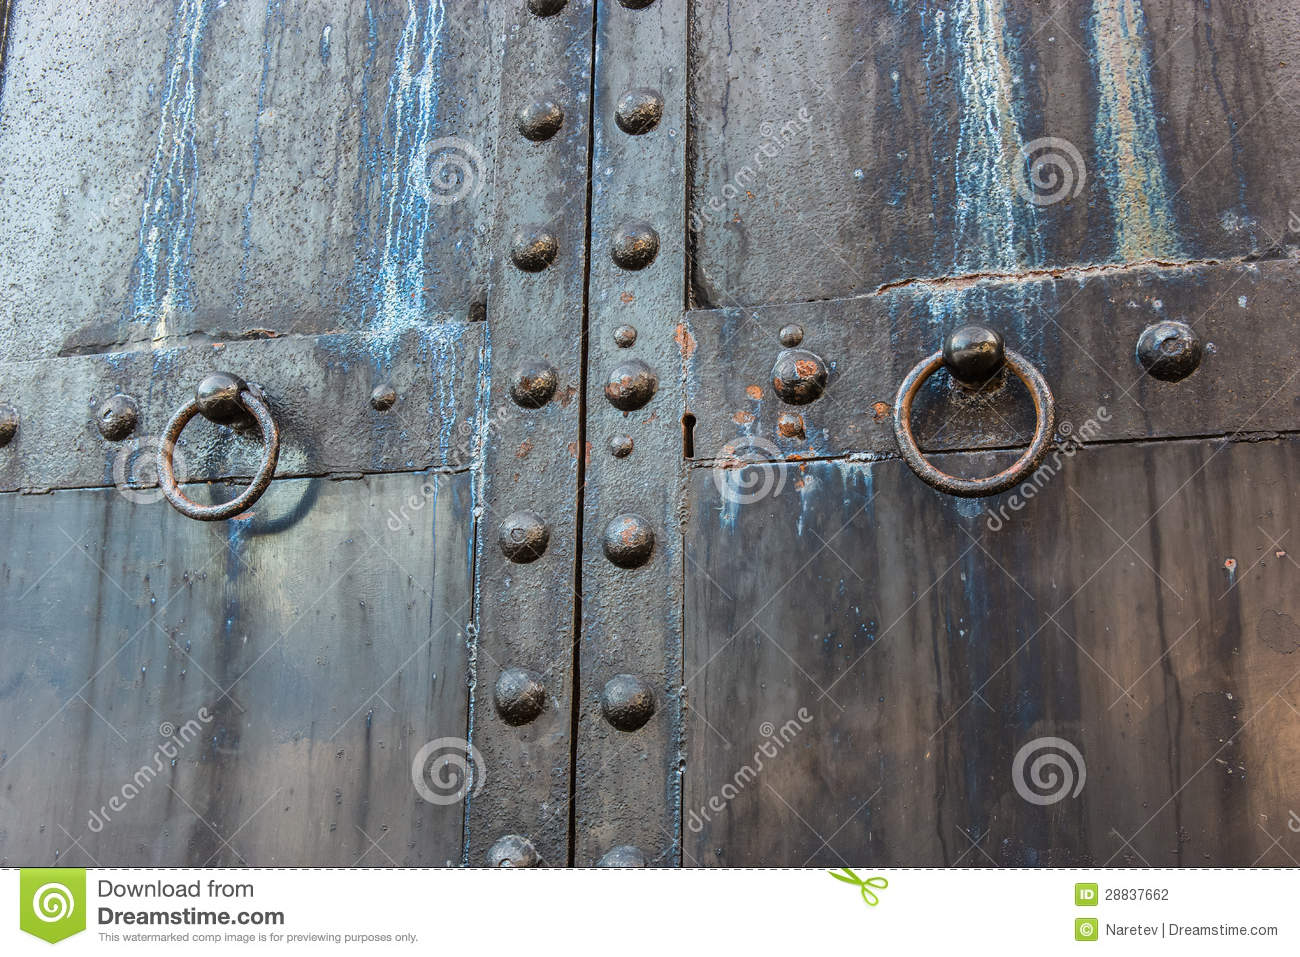 957 #7B5E50 Massive Old Black Weathered Steel Door With Skeleton Key Lock  Stock wallpaper Old - Old Metal Doors Examples, Ideas & Pictures Megarct.com Just